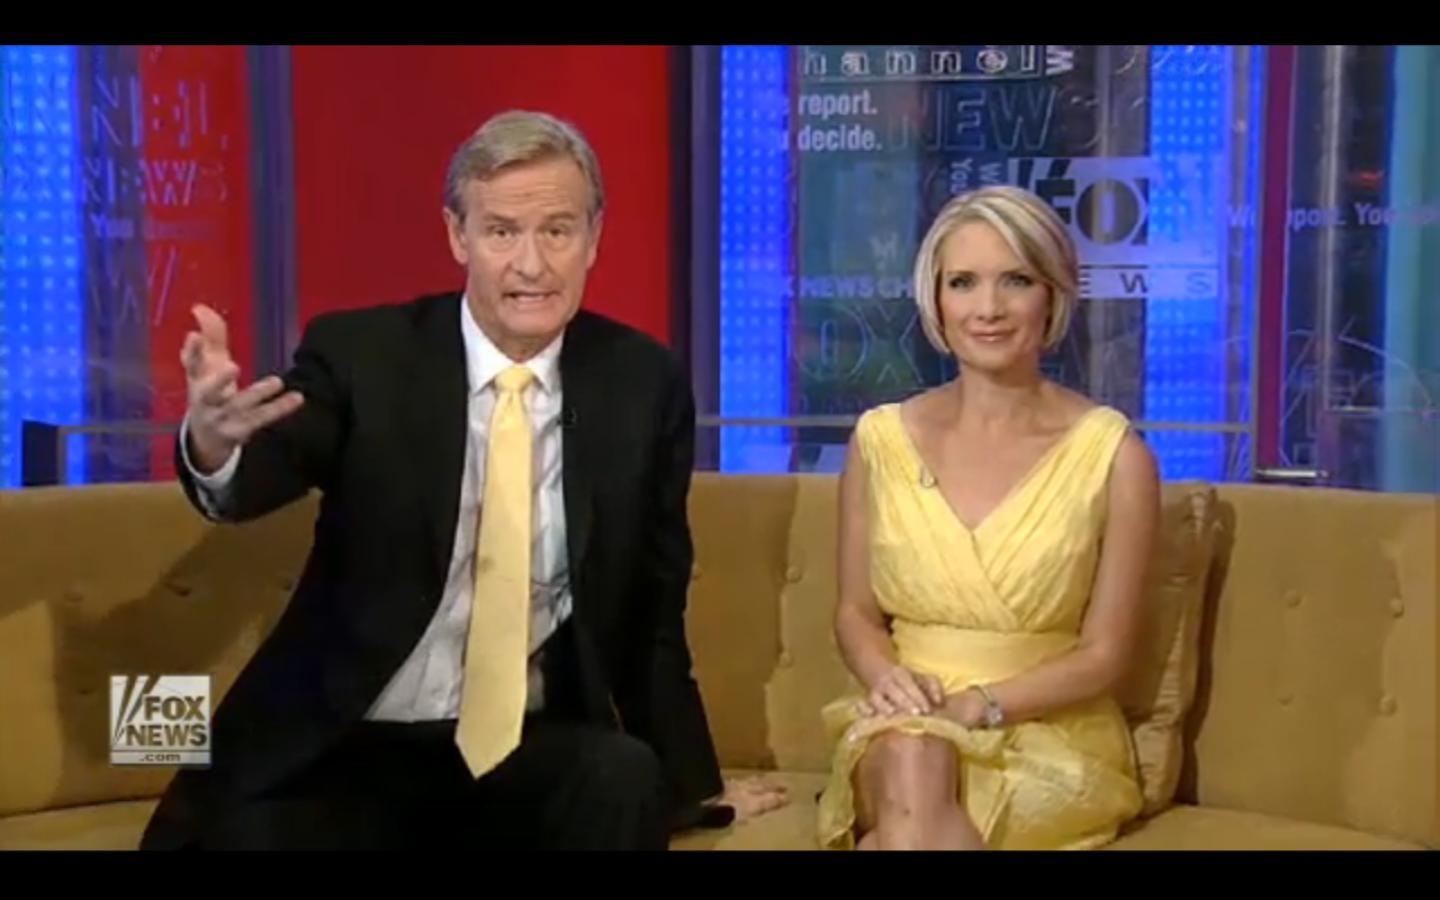 Dana Perino In A Swimsuit http://reporter101.blogspot.com/2010/07/3rd-week-of-july-courtney-friel-alisyn.html